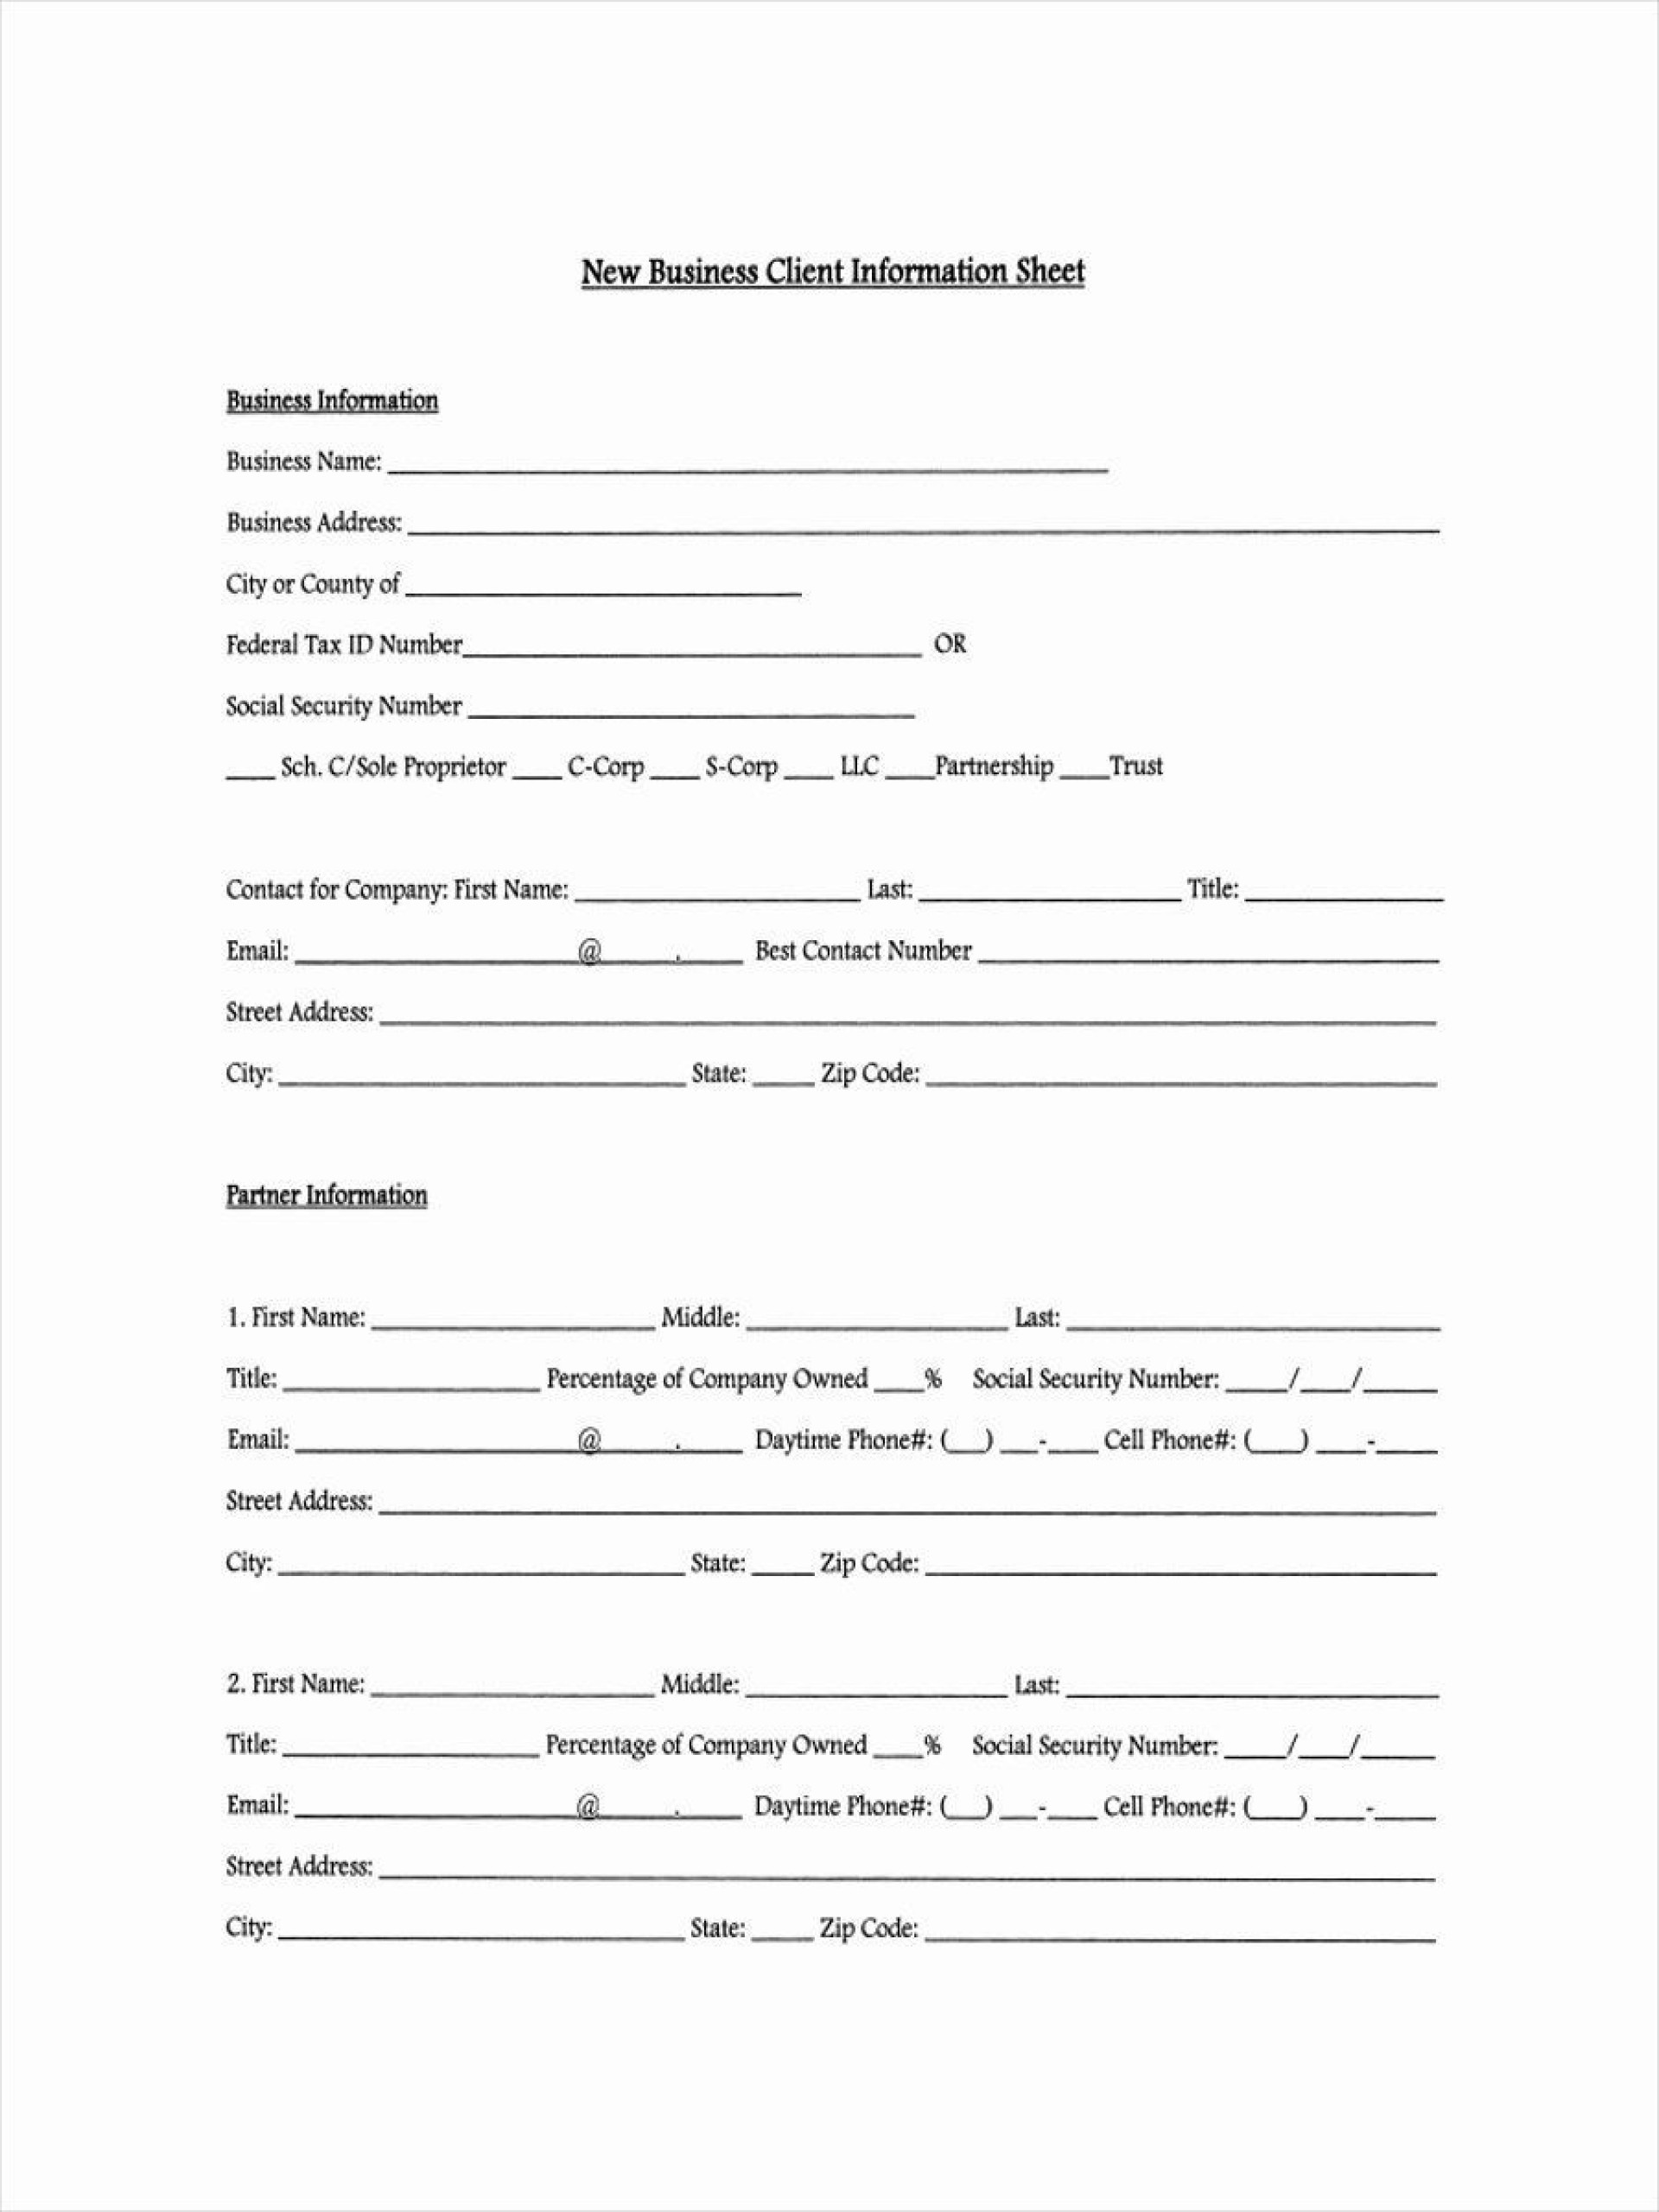 008 Imposing New Busines Client Information Form Template Image 1920